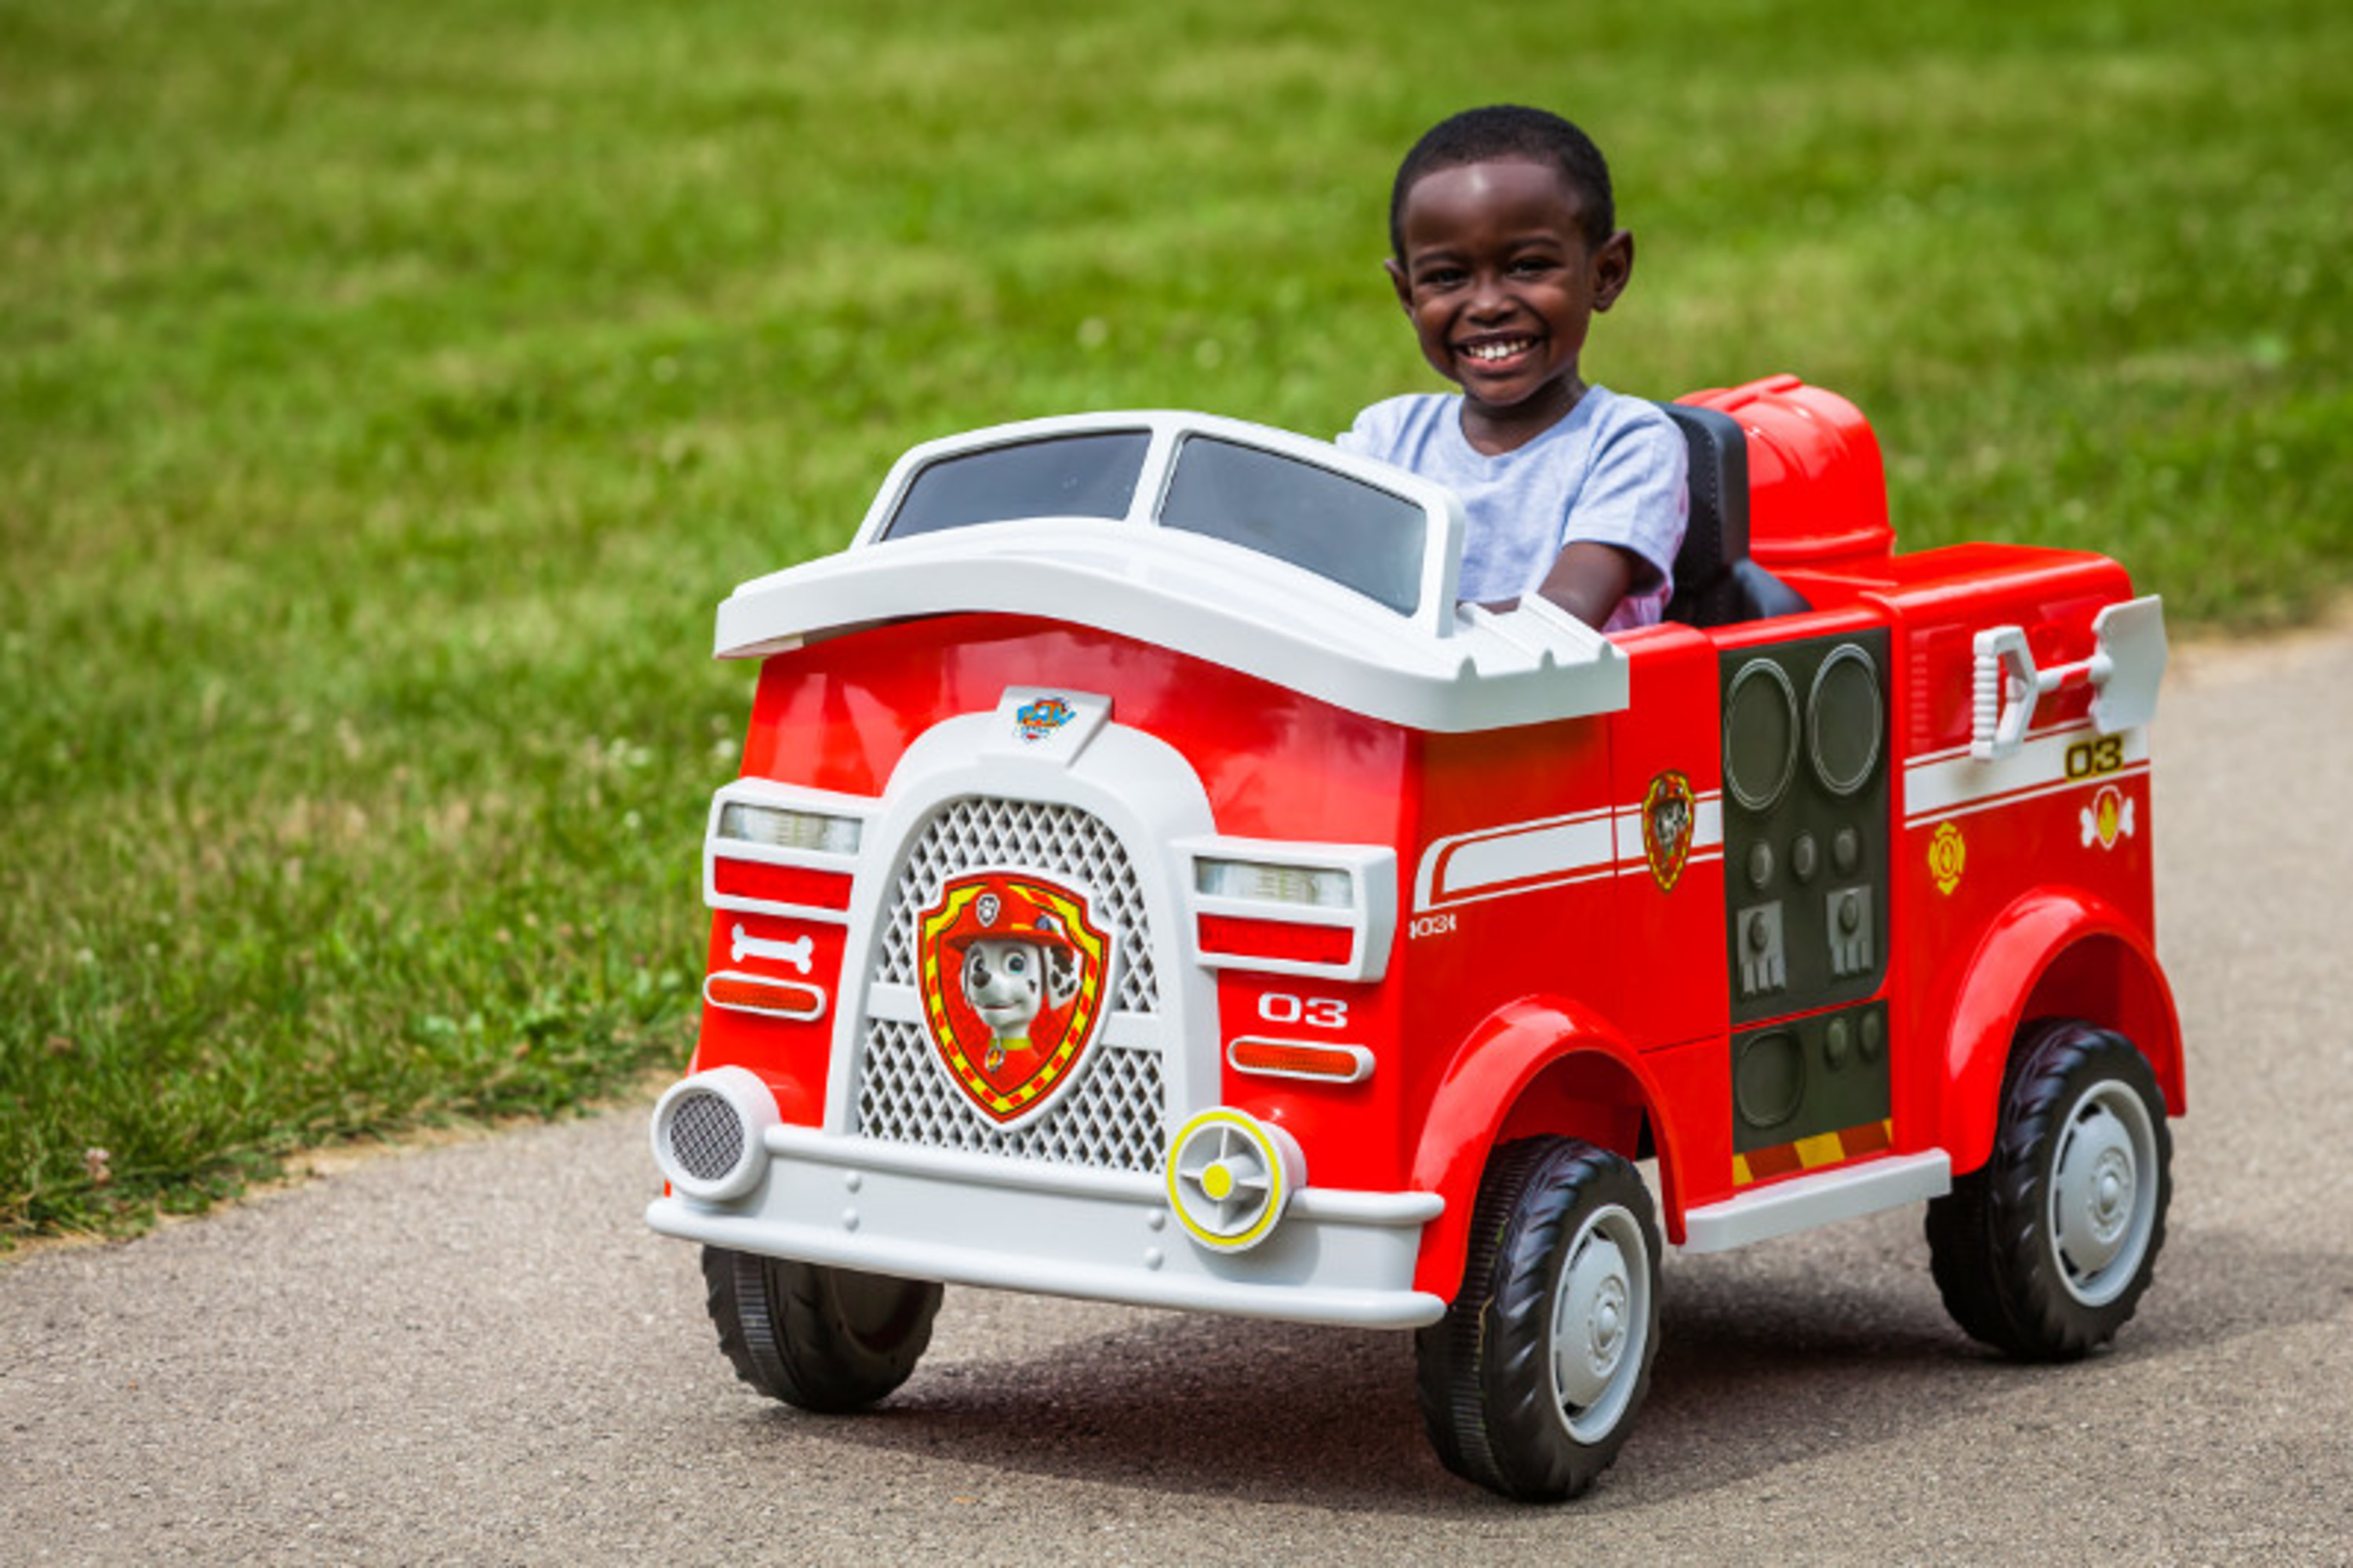 Paw Patrol Fire Truck 6 Volt powered Ride On Toy by Kid Trax, Marshall rescue